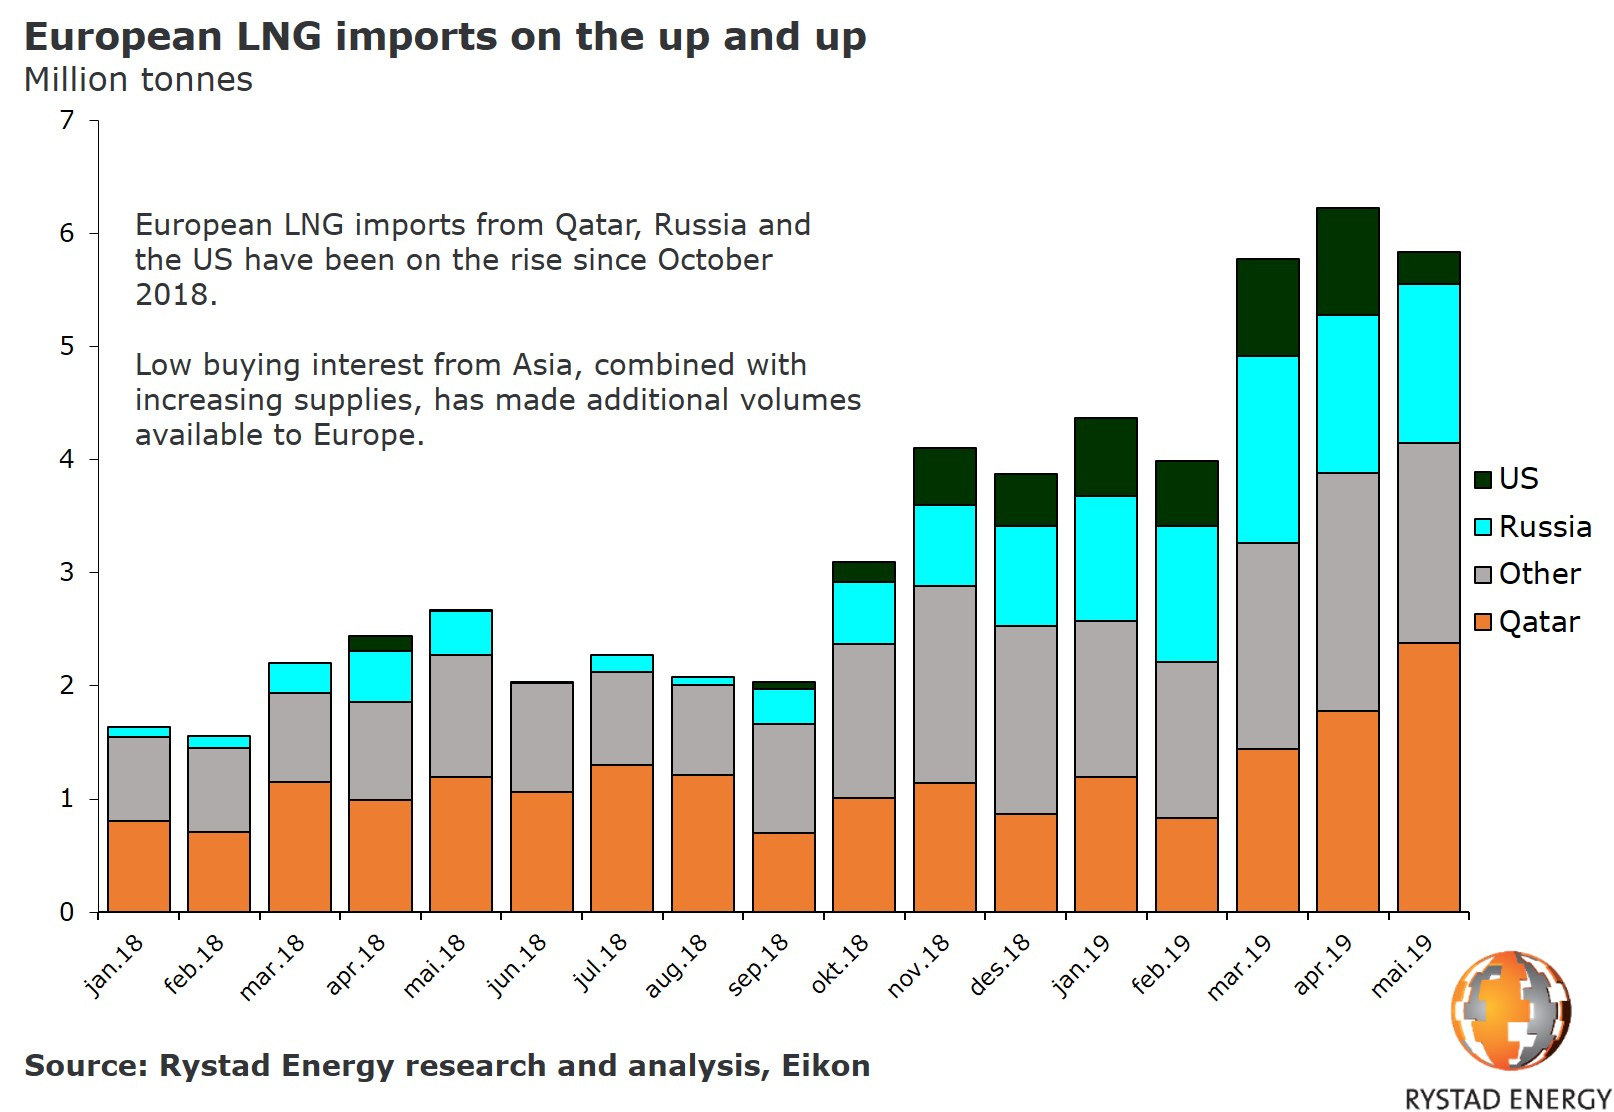 A chart showing European LNG imports per country from 2018 to May 2019